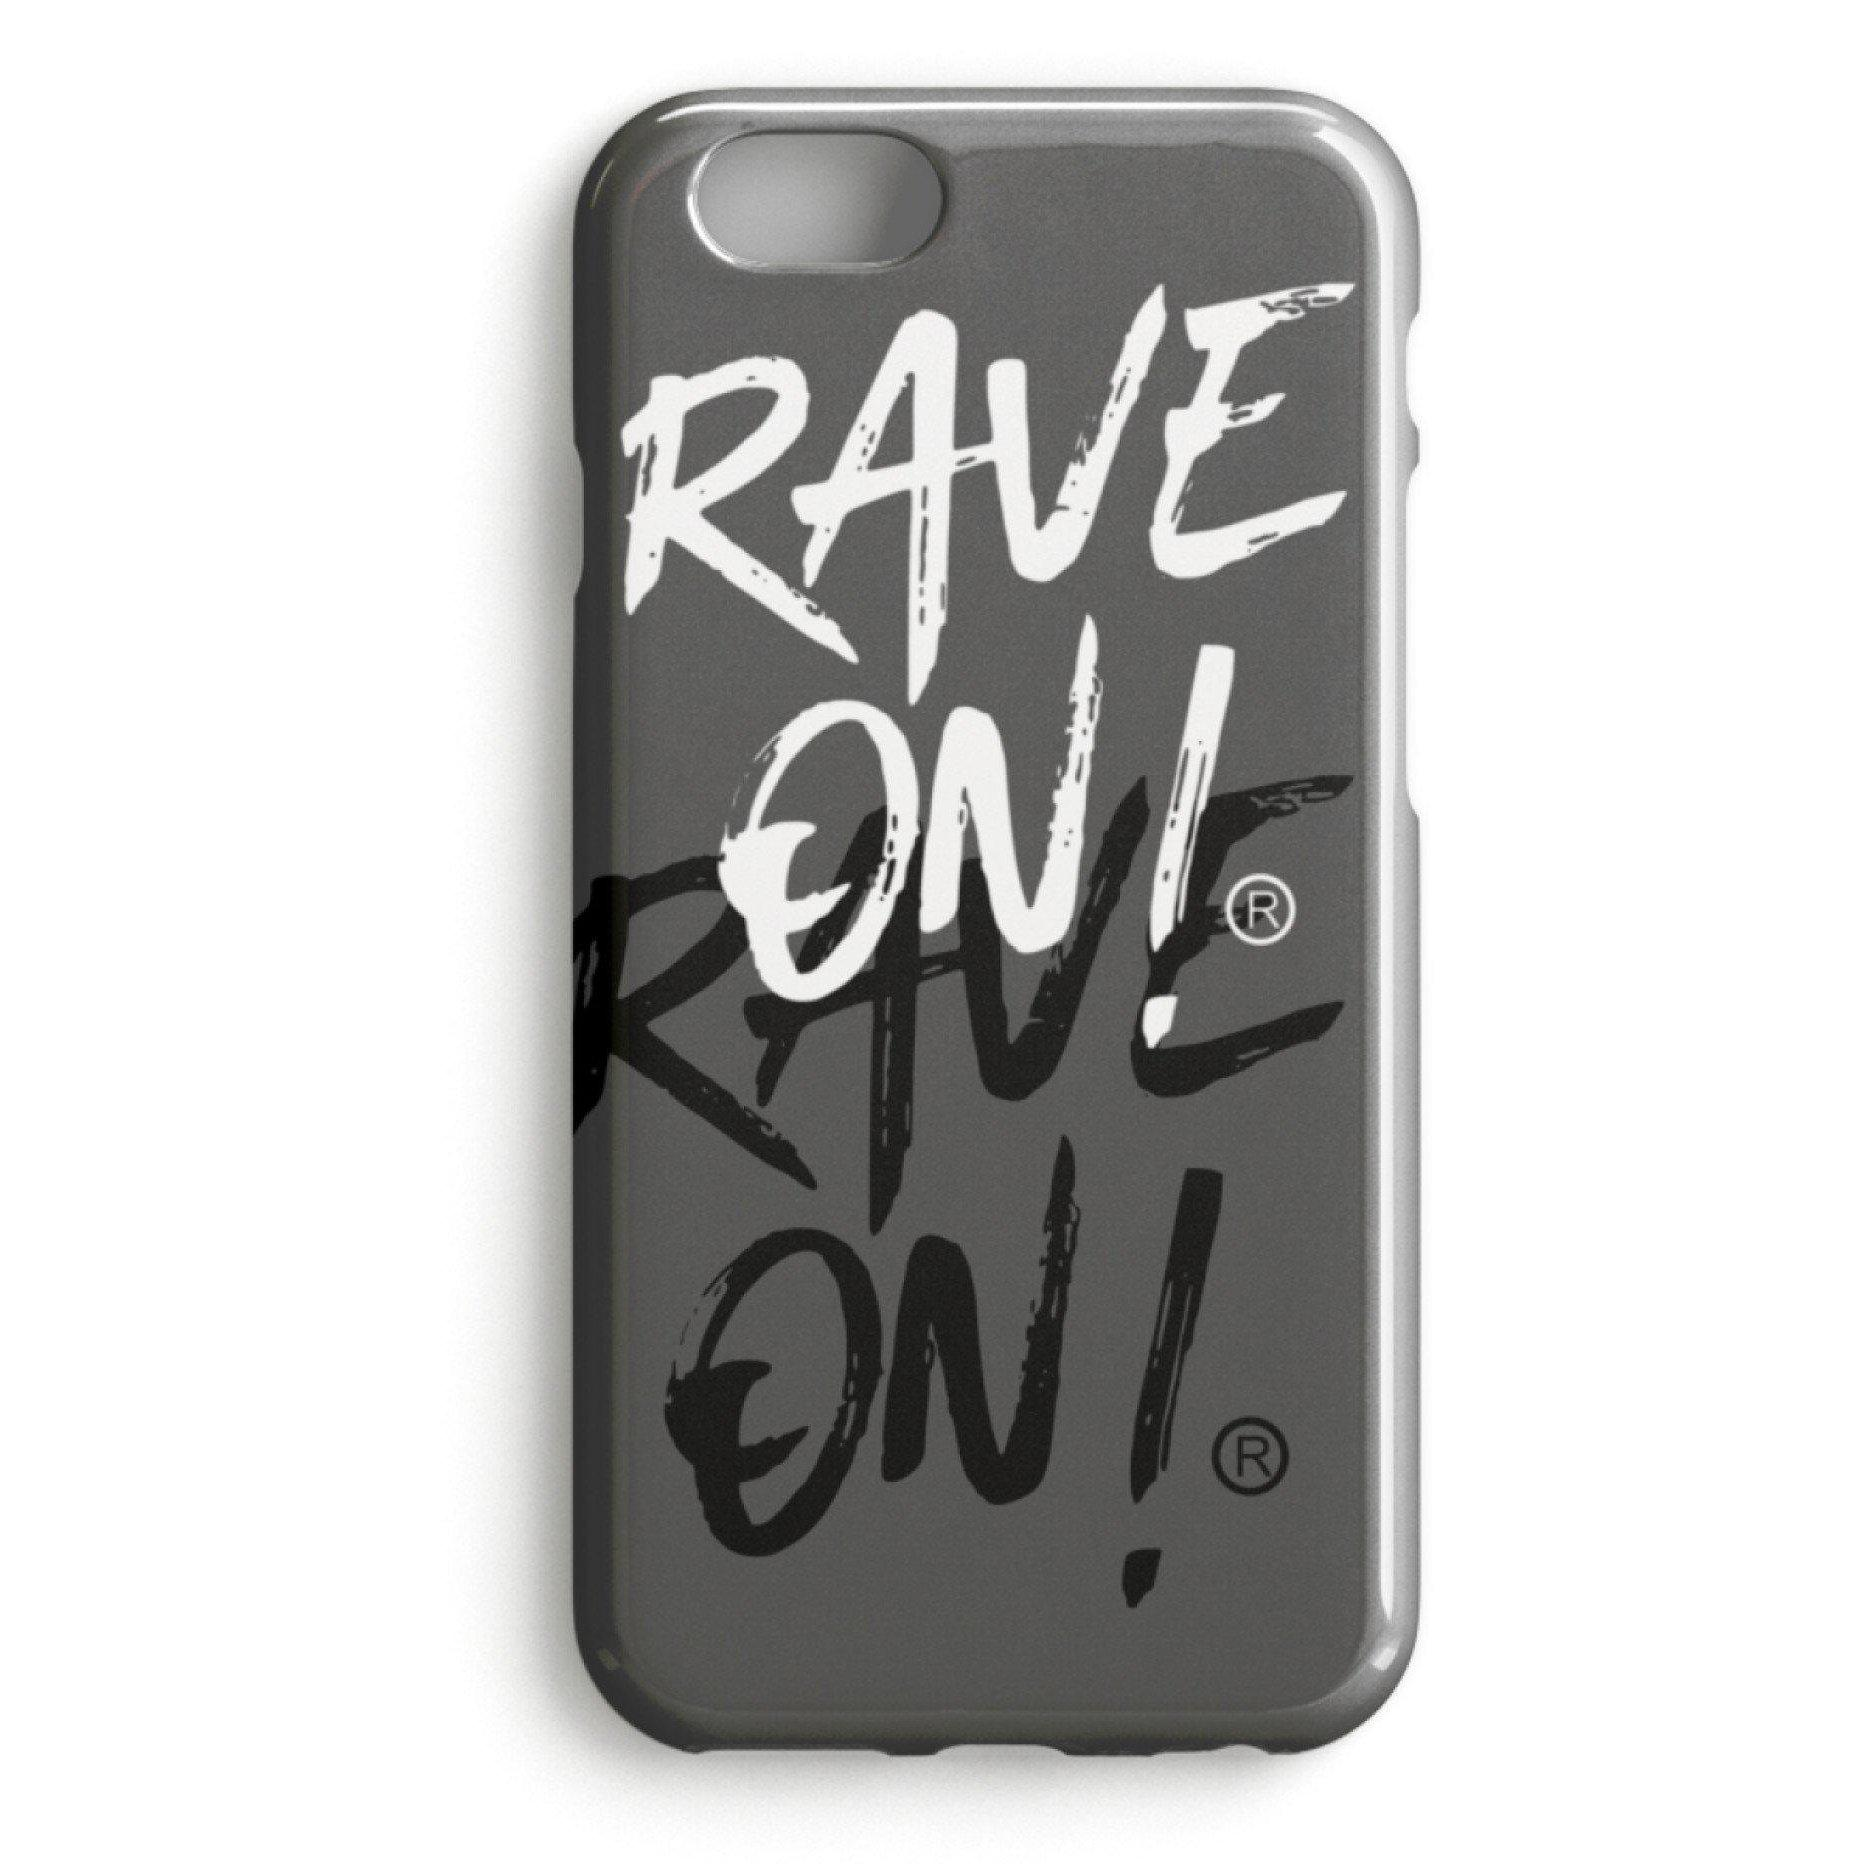 RAVE ON!® Iphone Cover Black Edition-iPhone Premium Case-Mausgrau-iPhone 7-Rave-On! I www.rave-on.shop I Deine Rave & Techno Szene Shop I apparel, brand, Case, i heart raves, iphone, marke, Merch, on, on!®, rave, rave apparel, rave clothes, rave clothing, rave fashion, rave gear, Rave on, Rave On!®, rave shop, rave wear, raver, samsung, Shop, techno, techno apparel, techno handyhülle, ® - Sexy Festival Streetwear , Clubwear & Raver Style